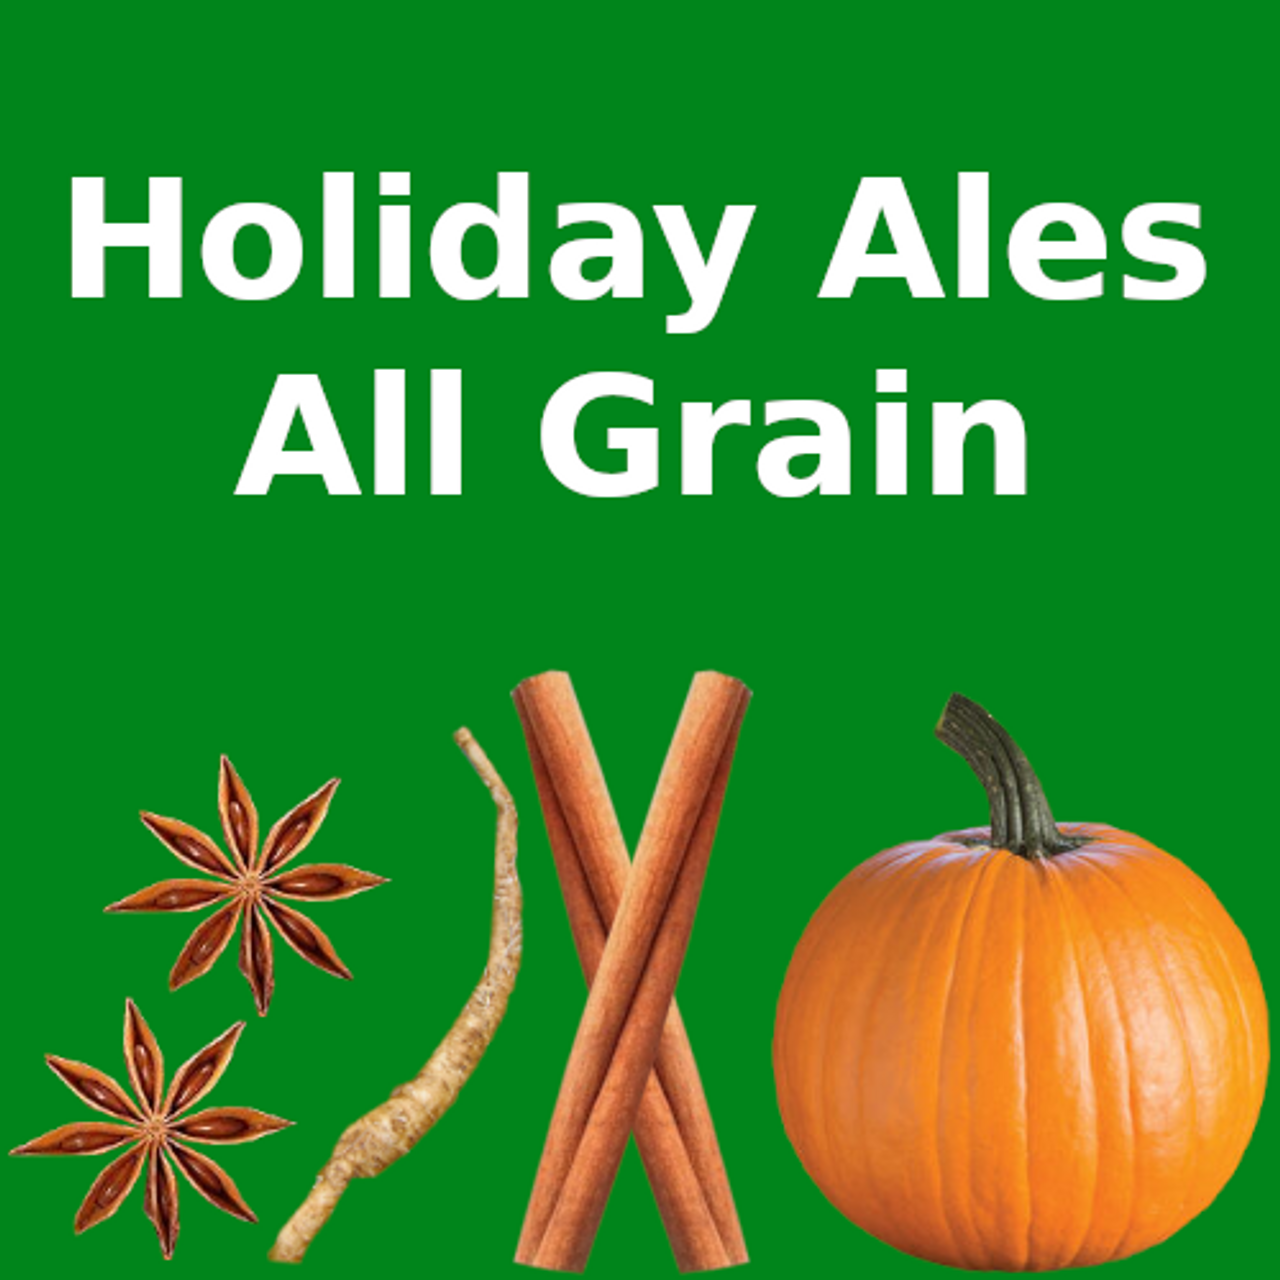 Holiday Ales - All Grain